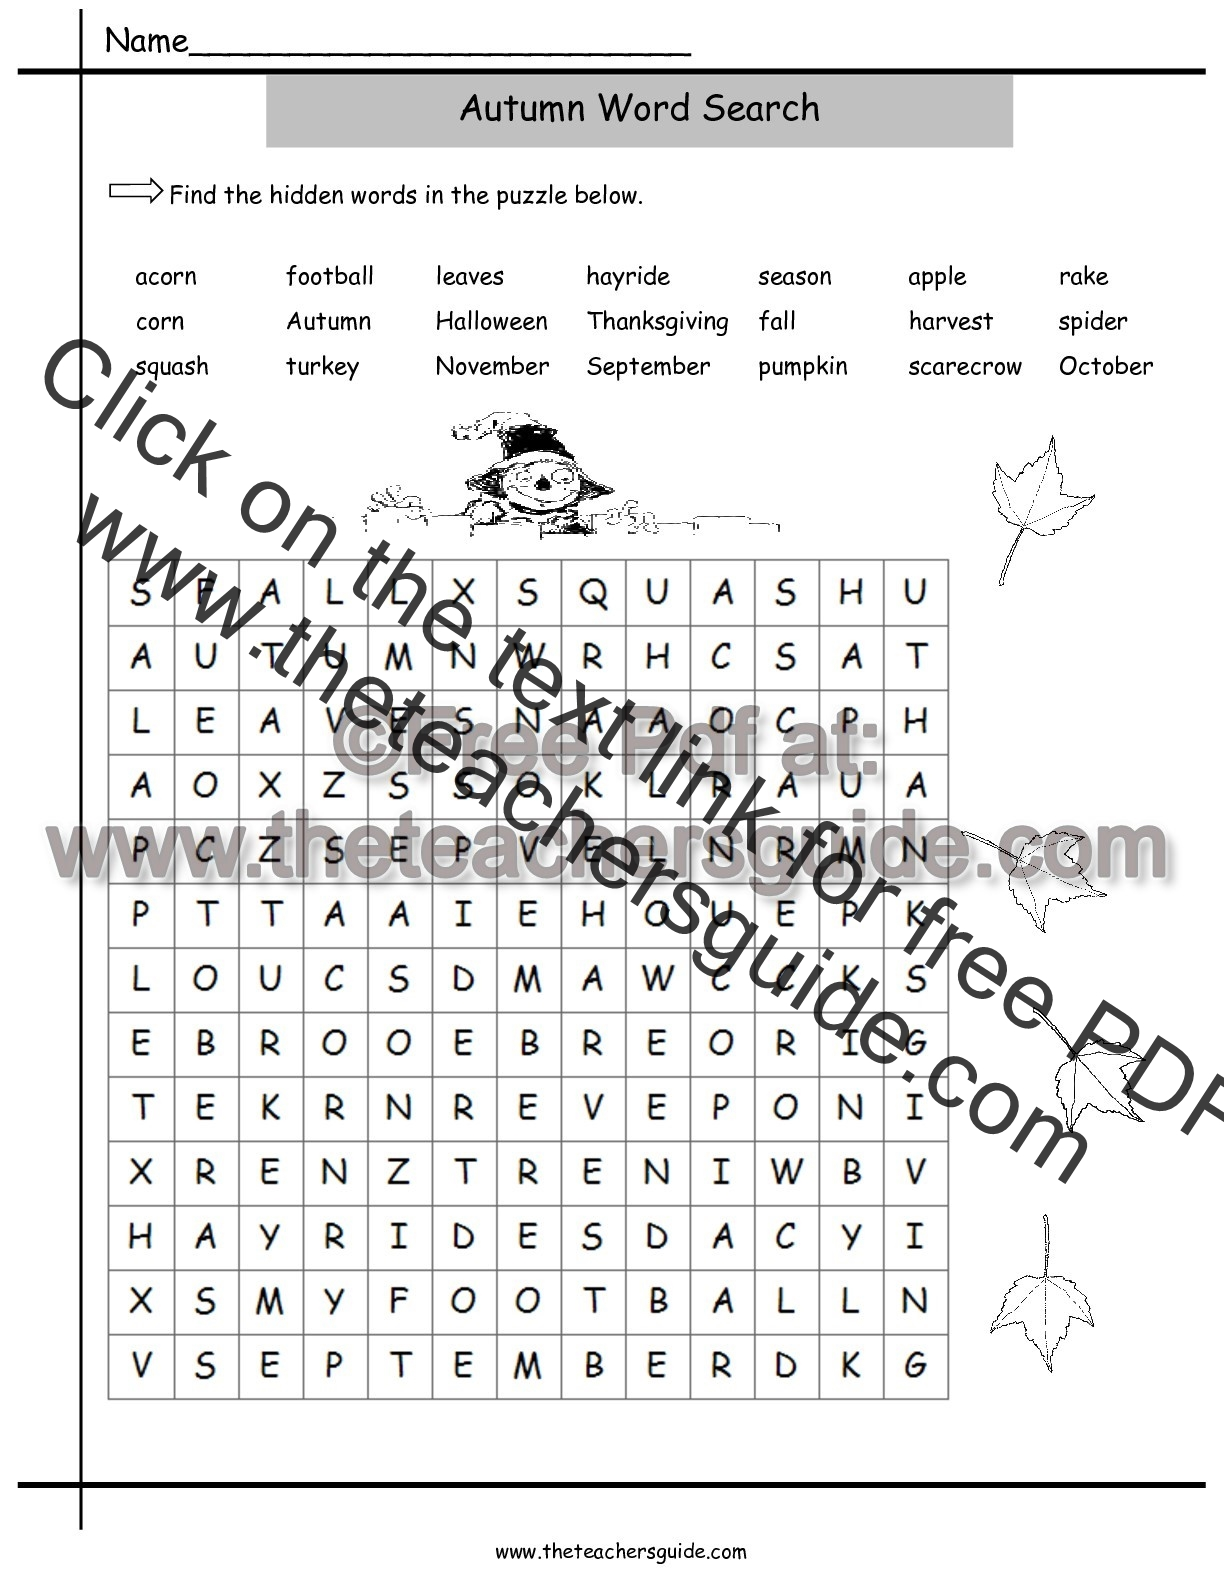 Uncategorized Fall Worksheets For First Grade fall lesson plans printouts themes crafts and clipart autumn wordsearch